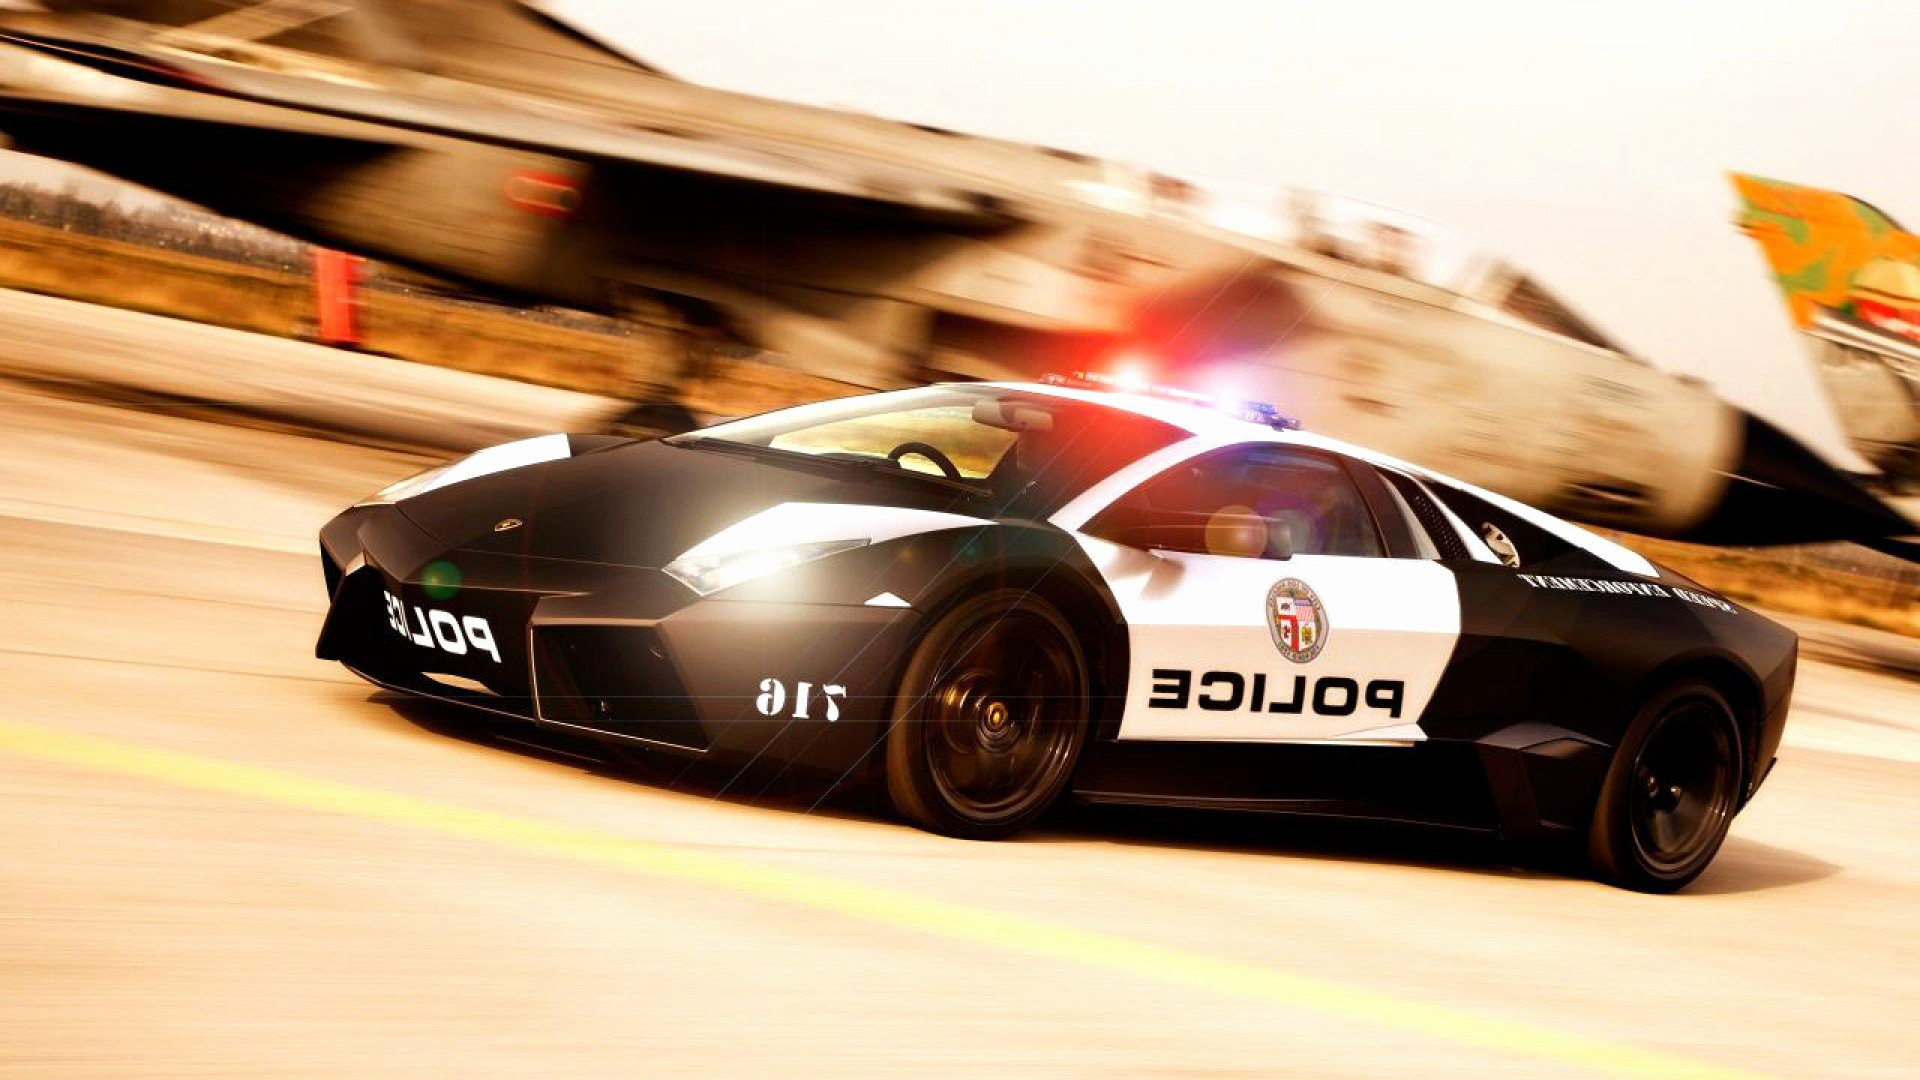 1920x1080 Police Car Wallpapers Awesome Police Lamborghini Walldevil